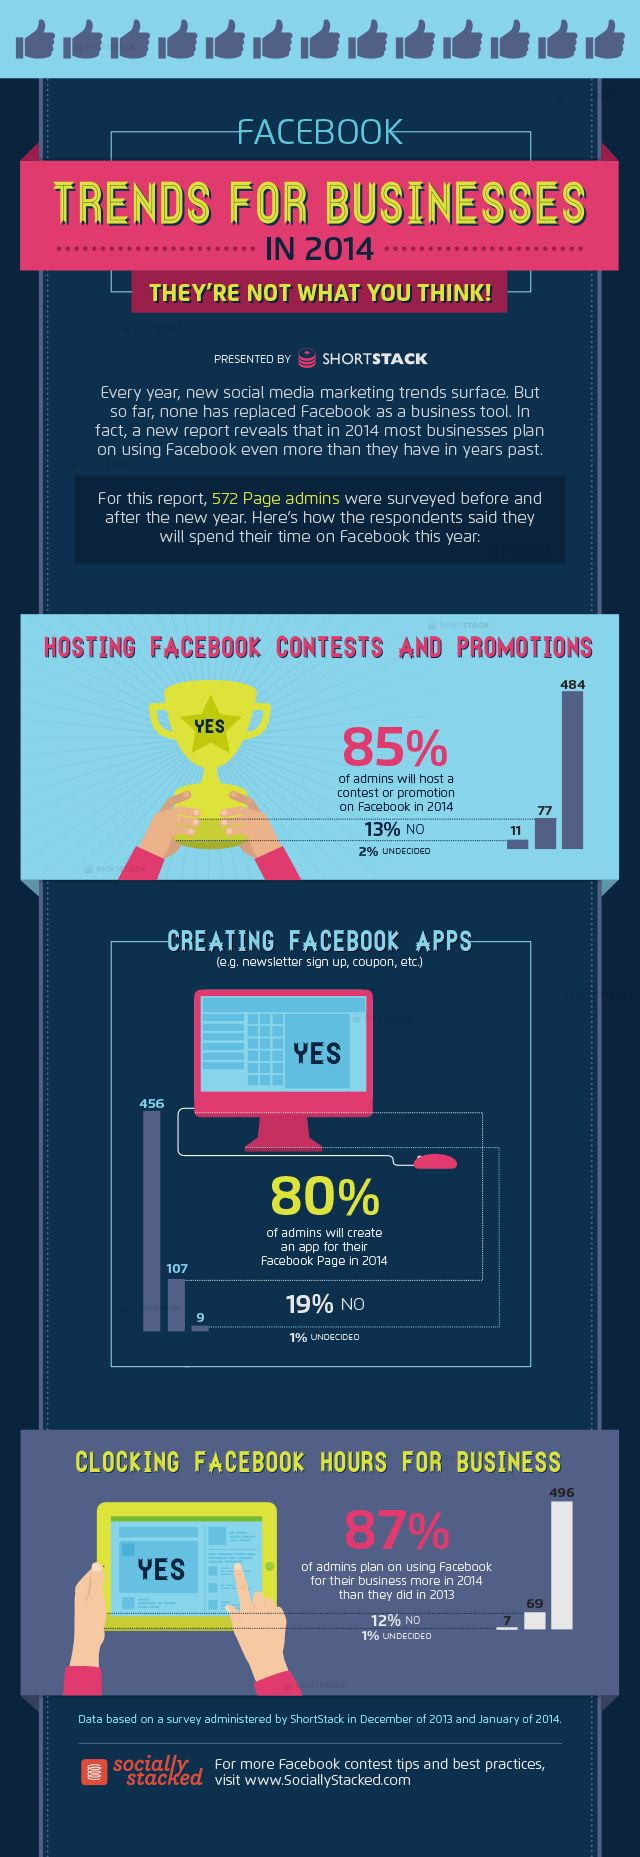 Facebook Trends For Businesses In 2014   #Infographic http://www.pinterest.com/pin/551972498051705033/